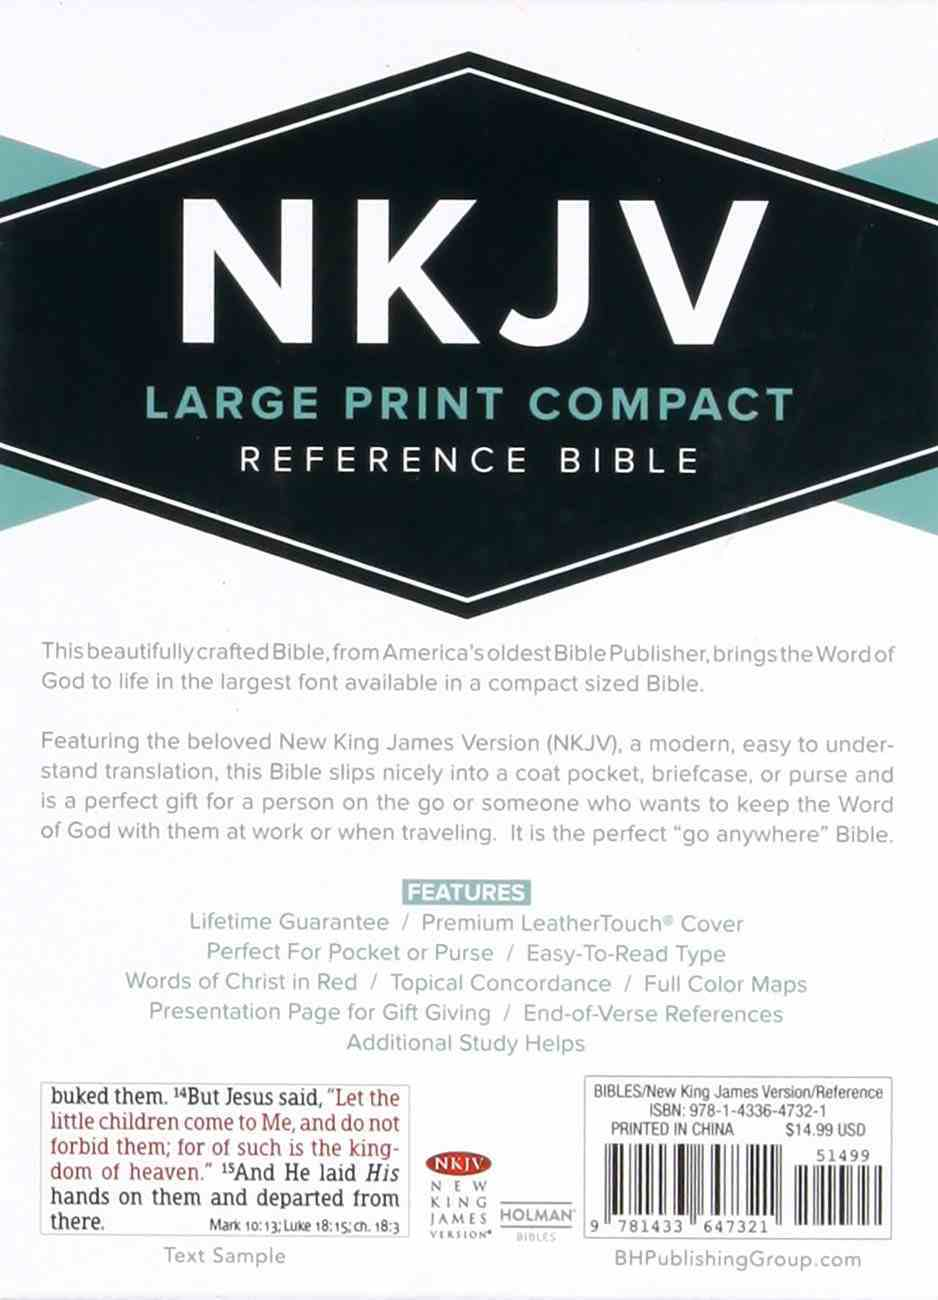 NKJV Large Print Compact Reference Bible Charcoal Red Letter Edition Imitation Leather